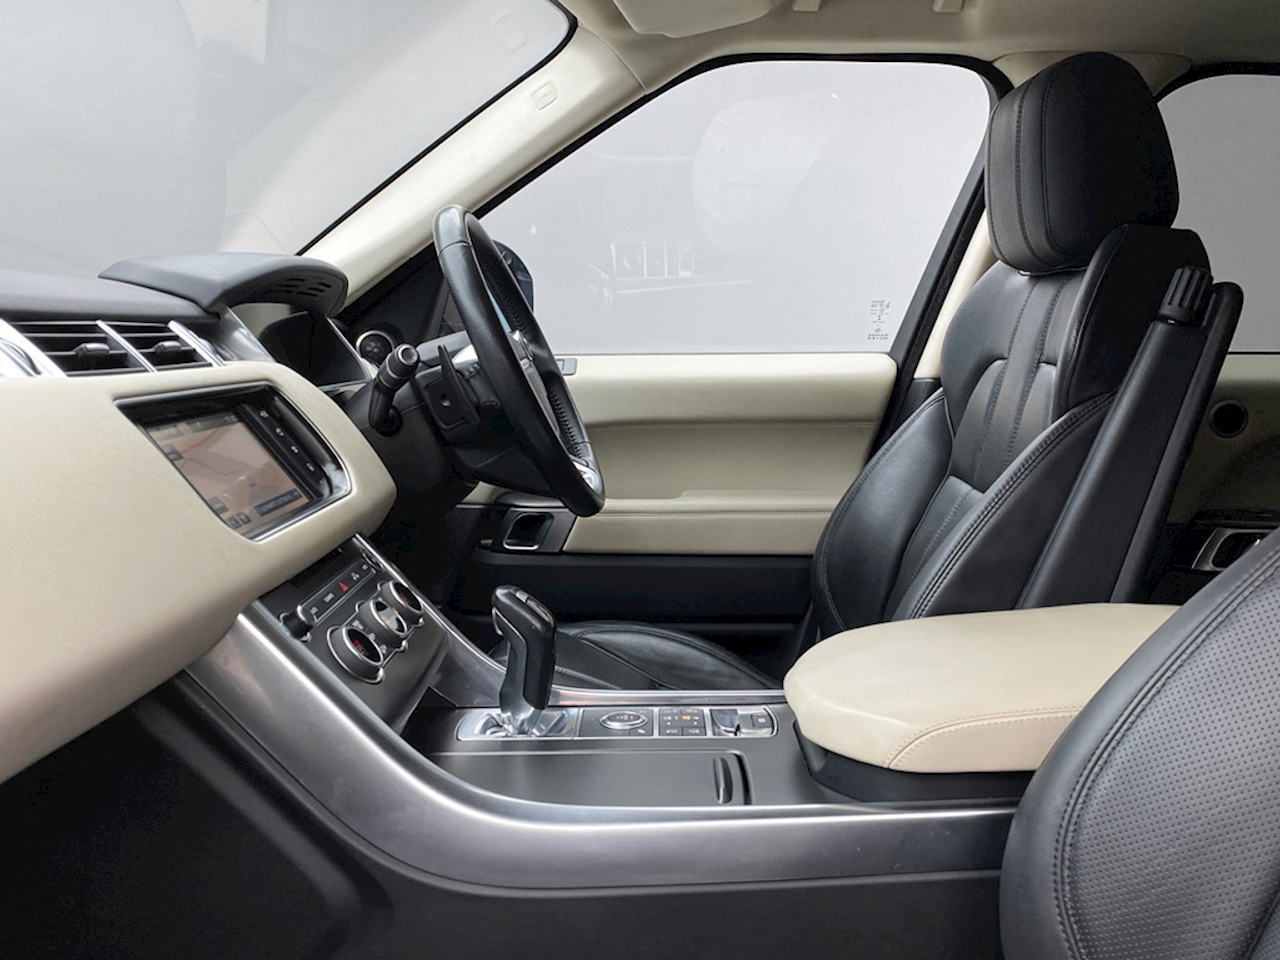 Land Rover 3.0 SD V6 HSE Dynamic SUV 5dr Diesel Automatic 4X4 (s/s) (185 g/km, 306 bhp)